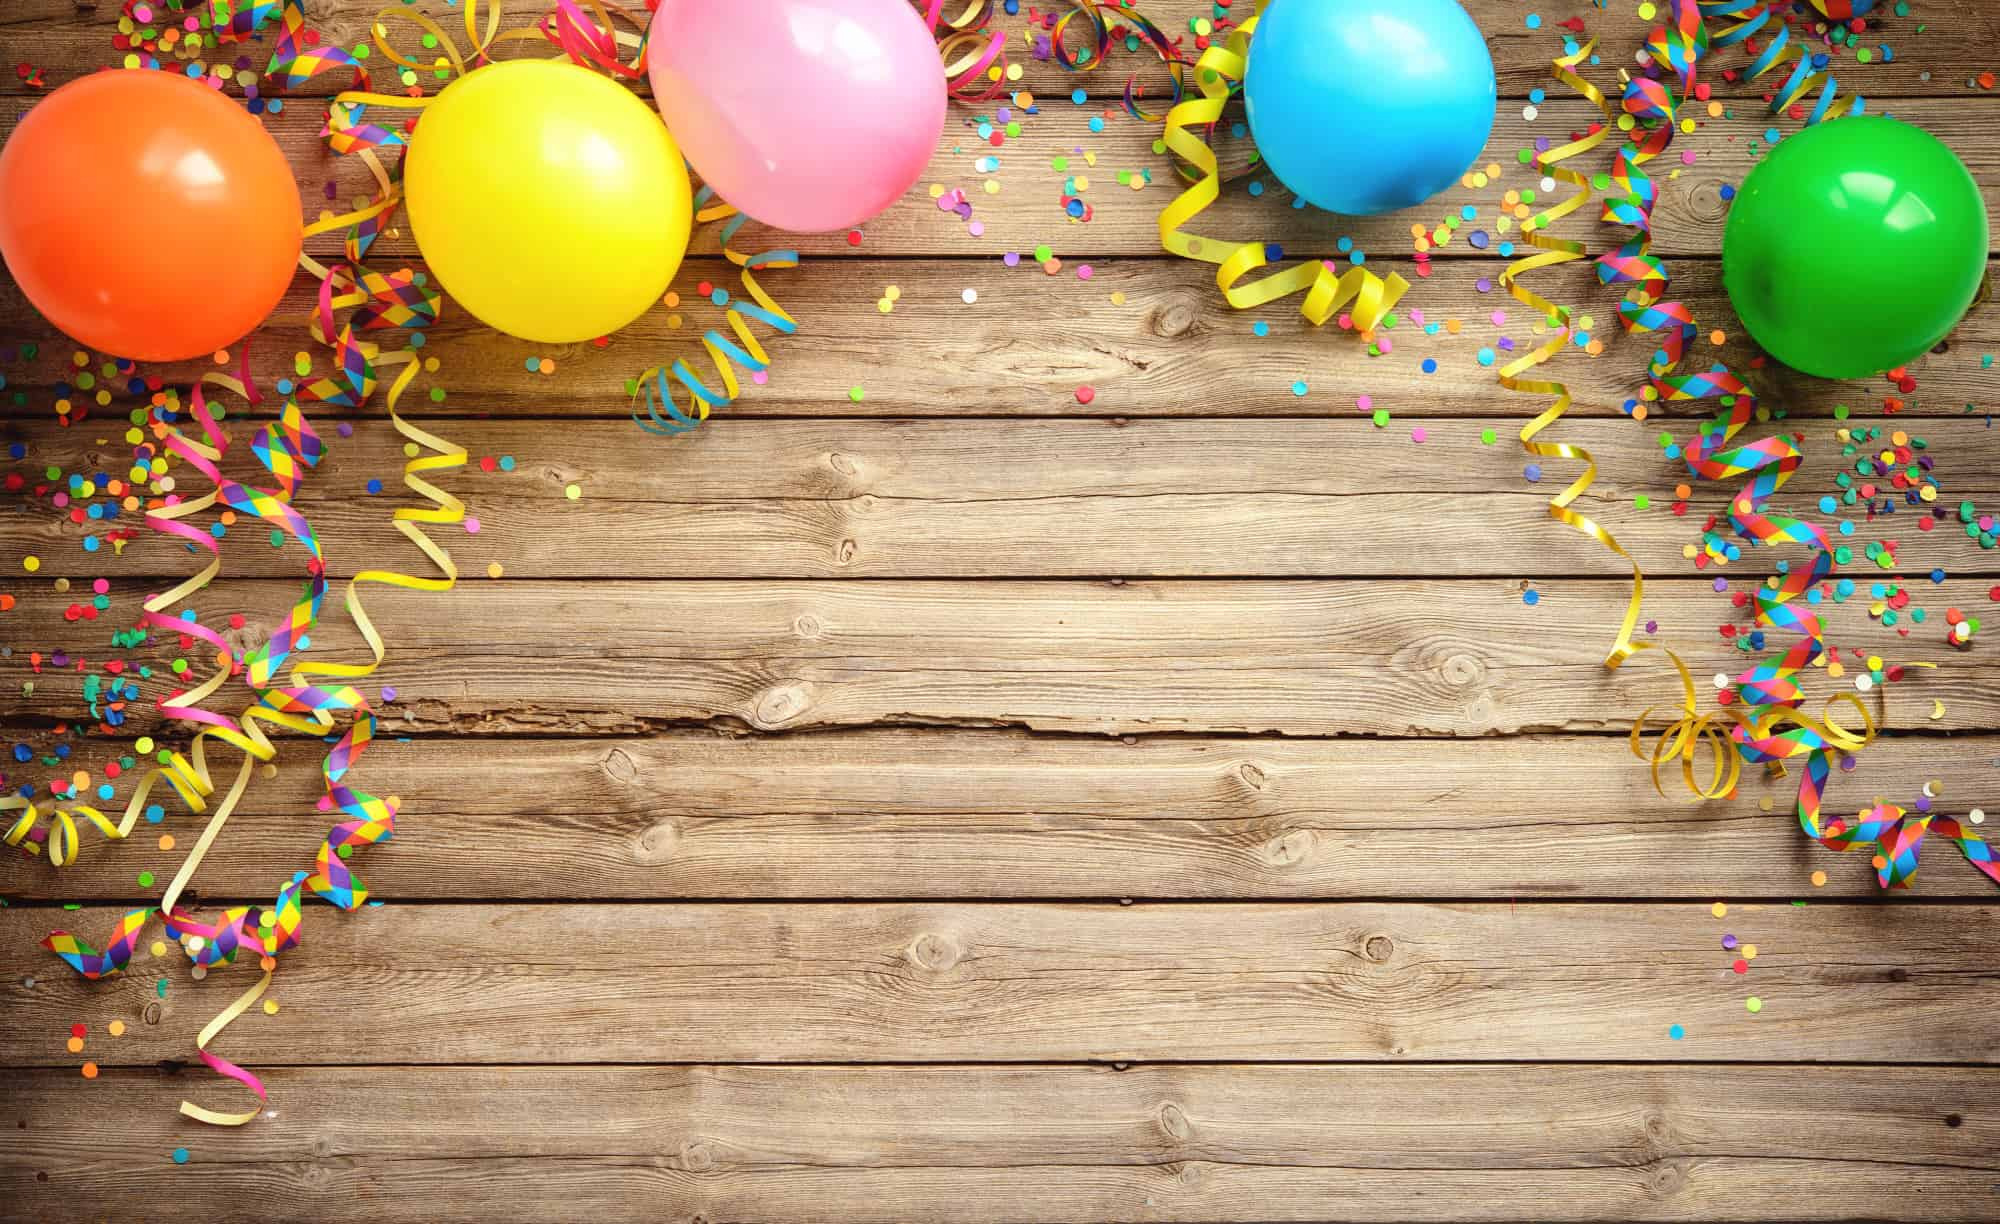 How to Throw a Birthday Party A Simple and Affordable Guide